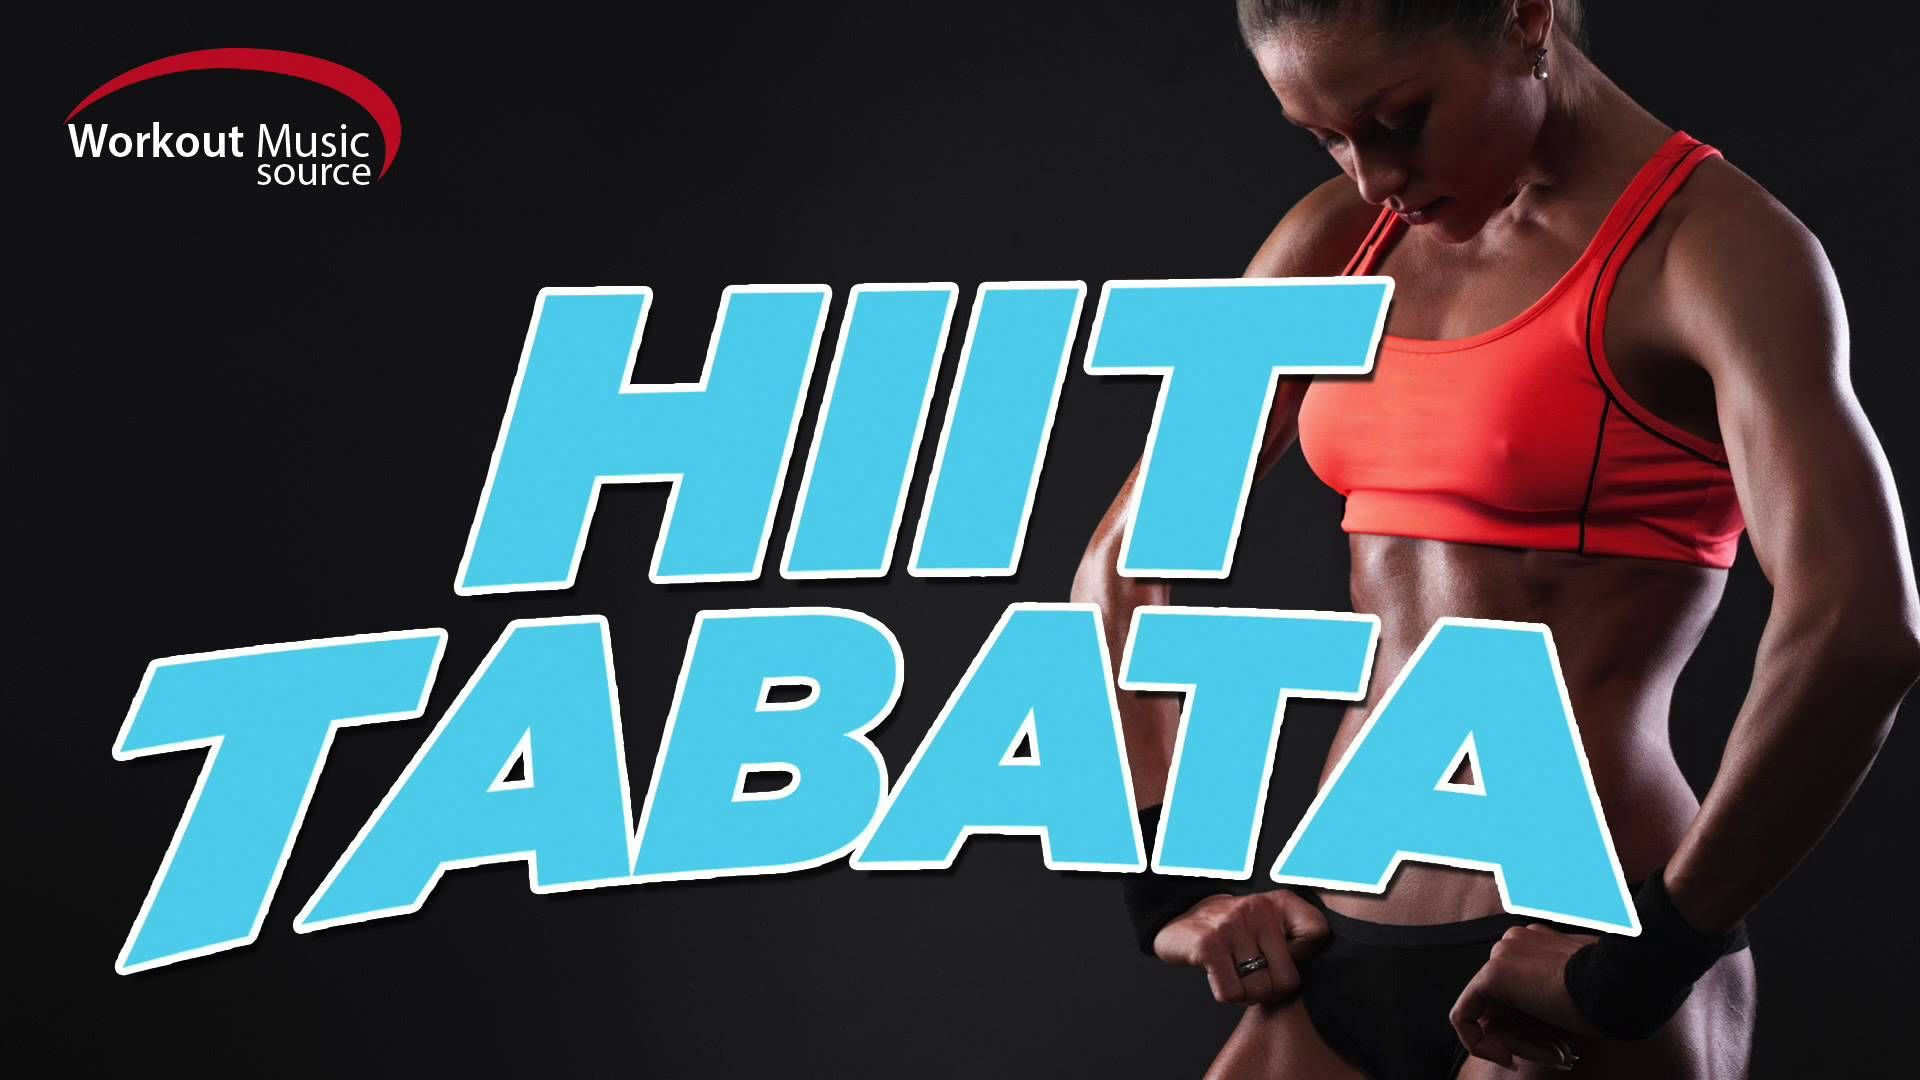 Workout Music Source // HIIT Tabata Training Session | Workout Music